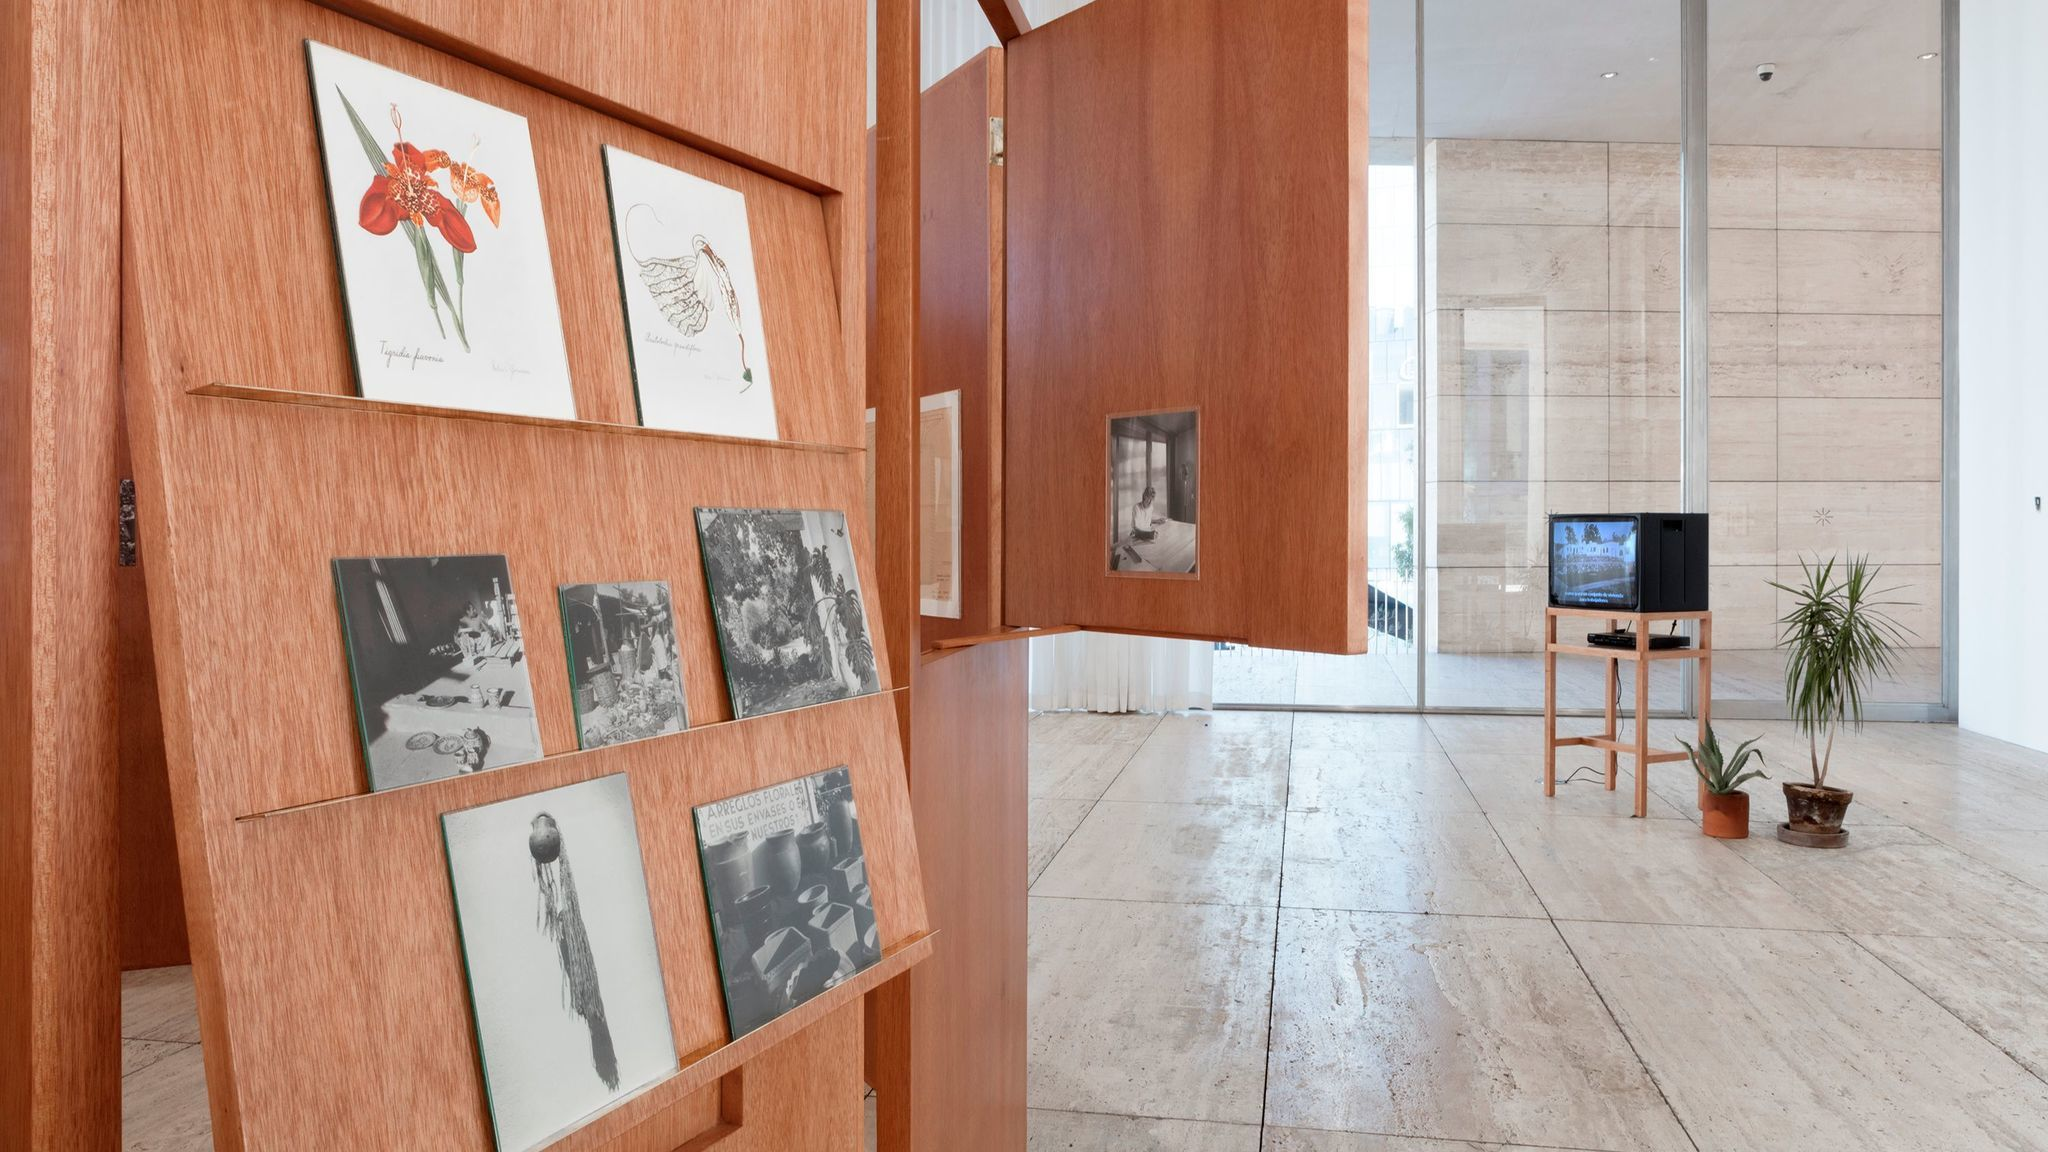 An exhibition devoted to L.A. architecture writer Esther McCoy at the Museo Jumex in Mexico gathers photography, drawings, writings and other ephemera.